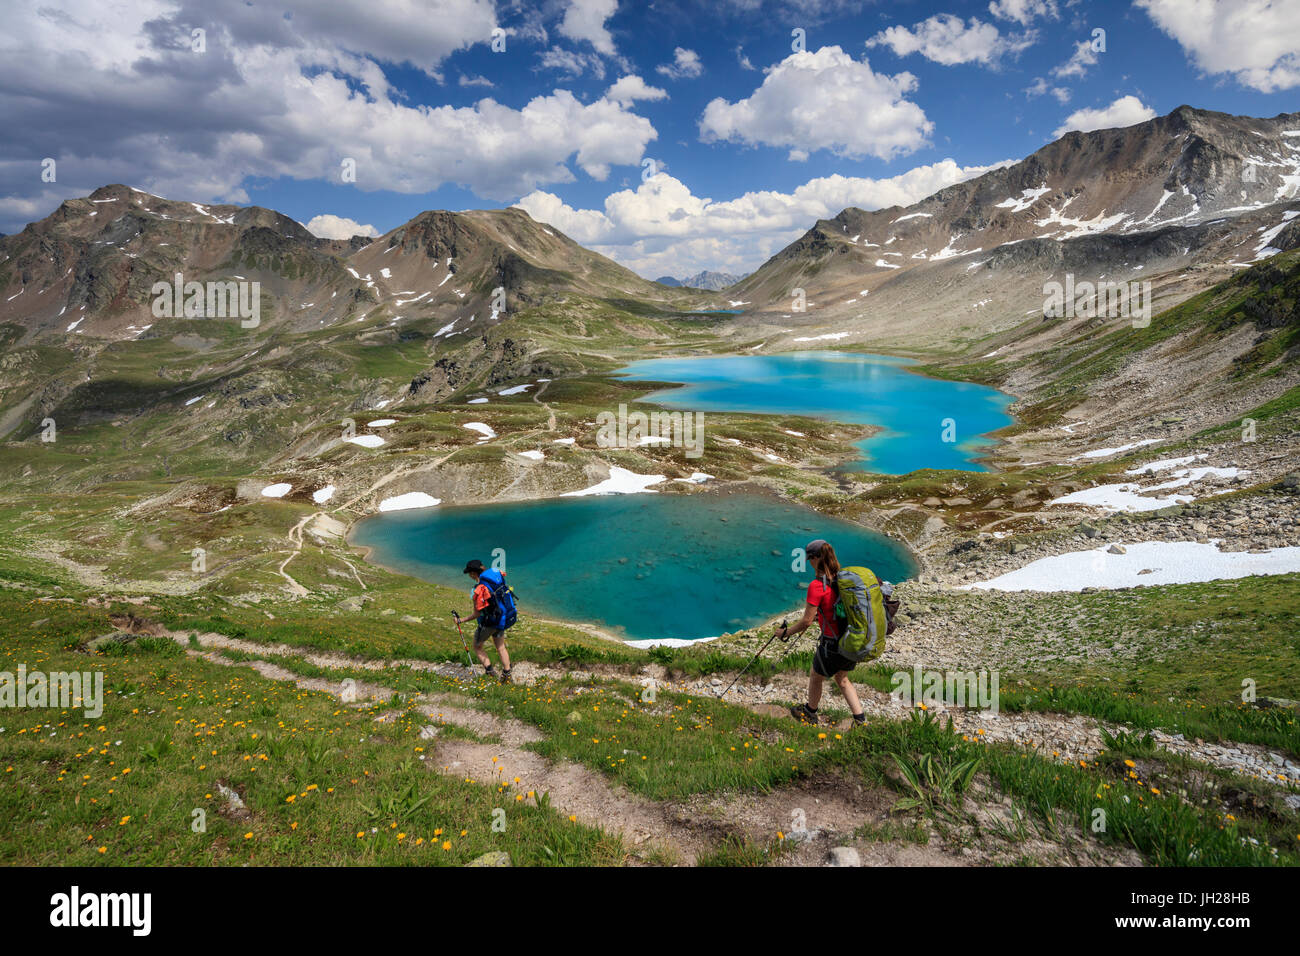 Hikers pass the turquoise lake and rocky peaks, Joriseen, Jorifless Pass, canton of Graubunden, Engadine, Switzerland, - Stock Image